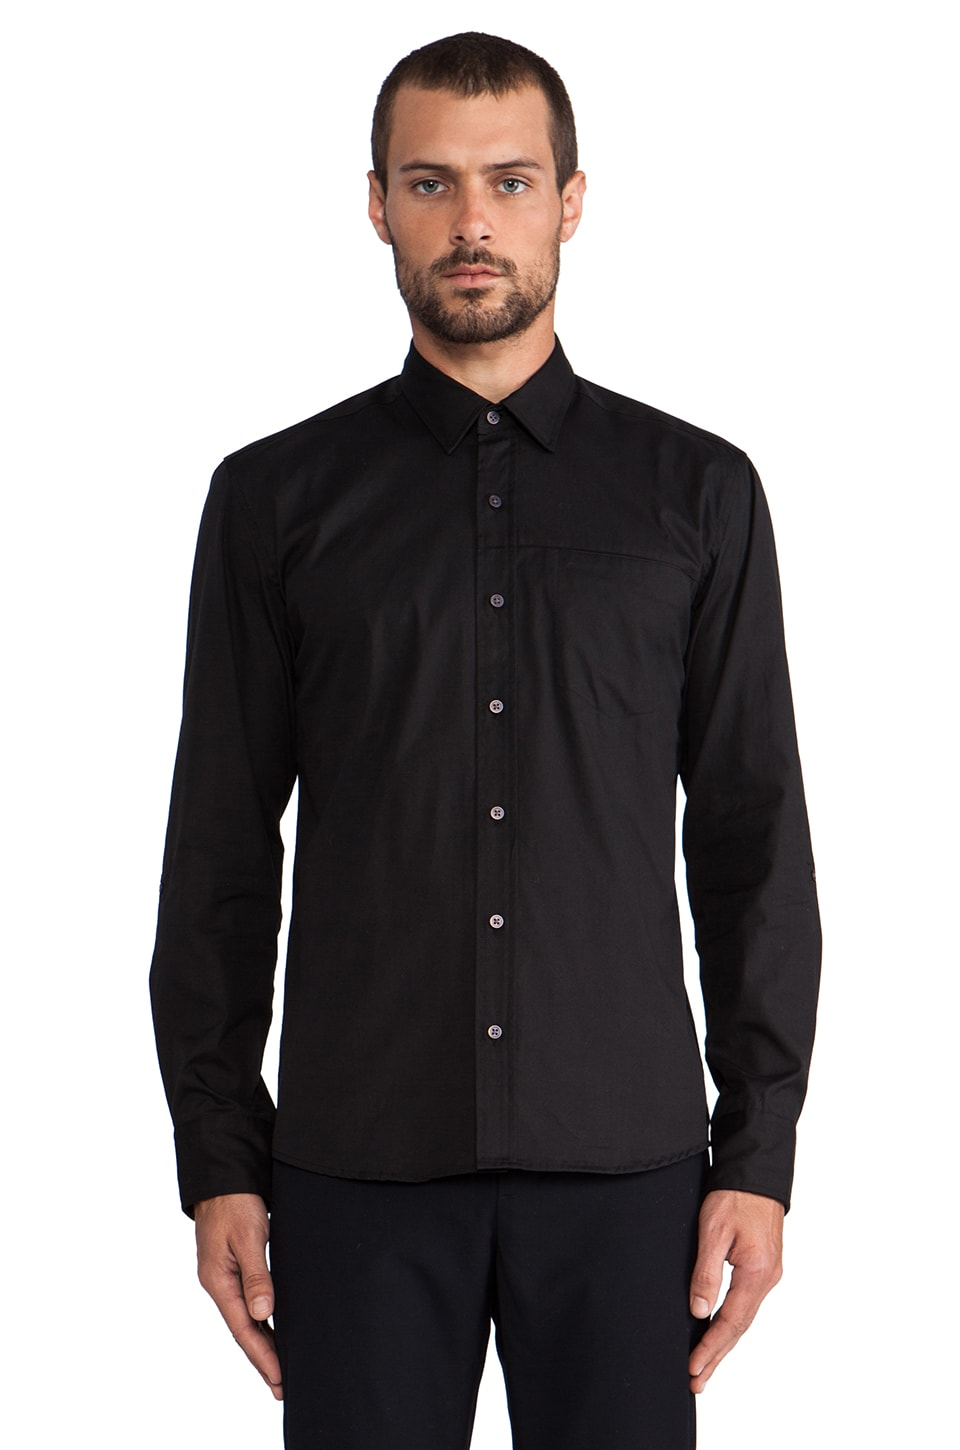 WRK Standard Shirt in Black